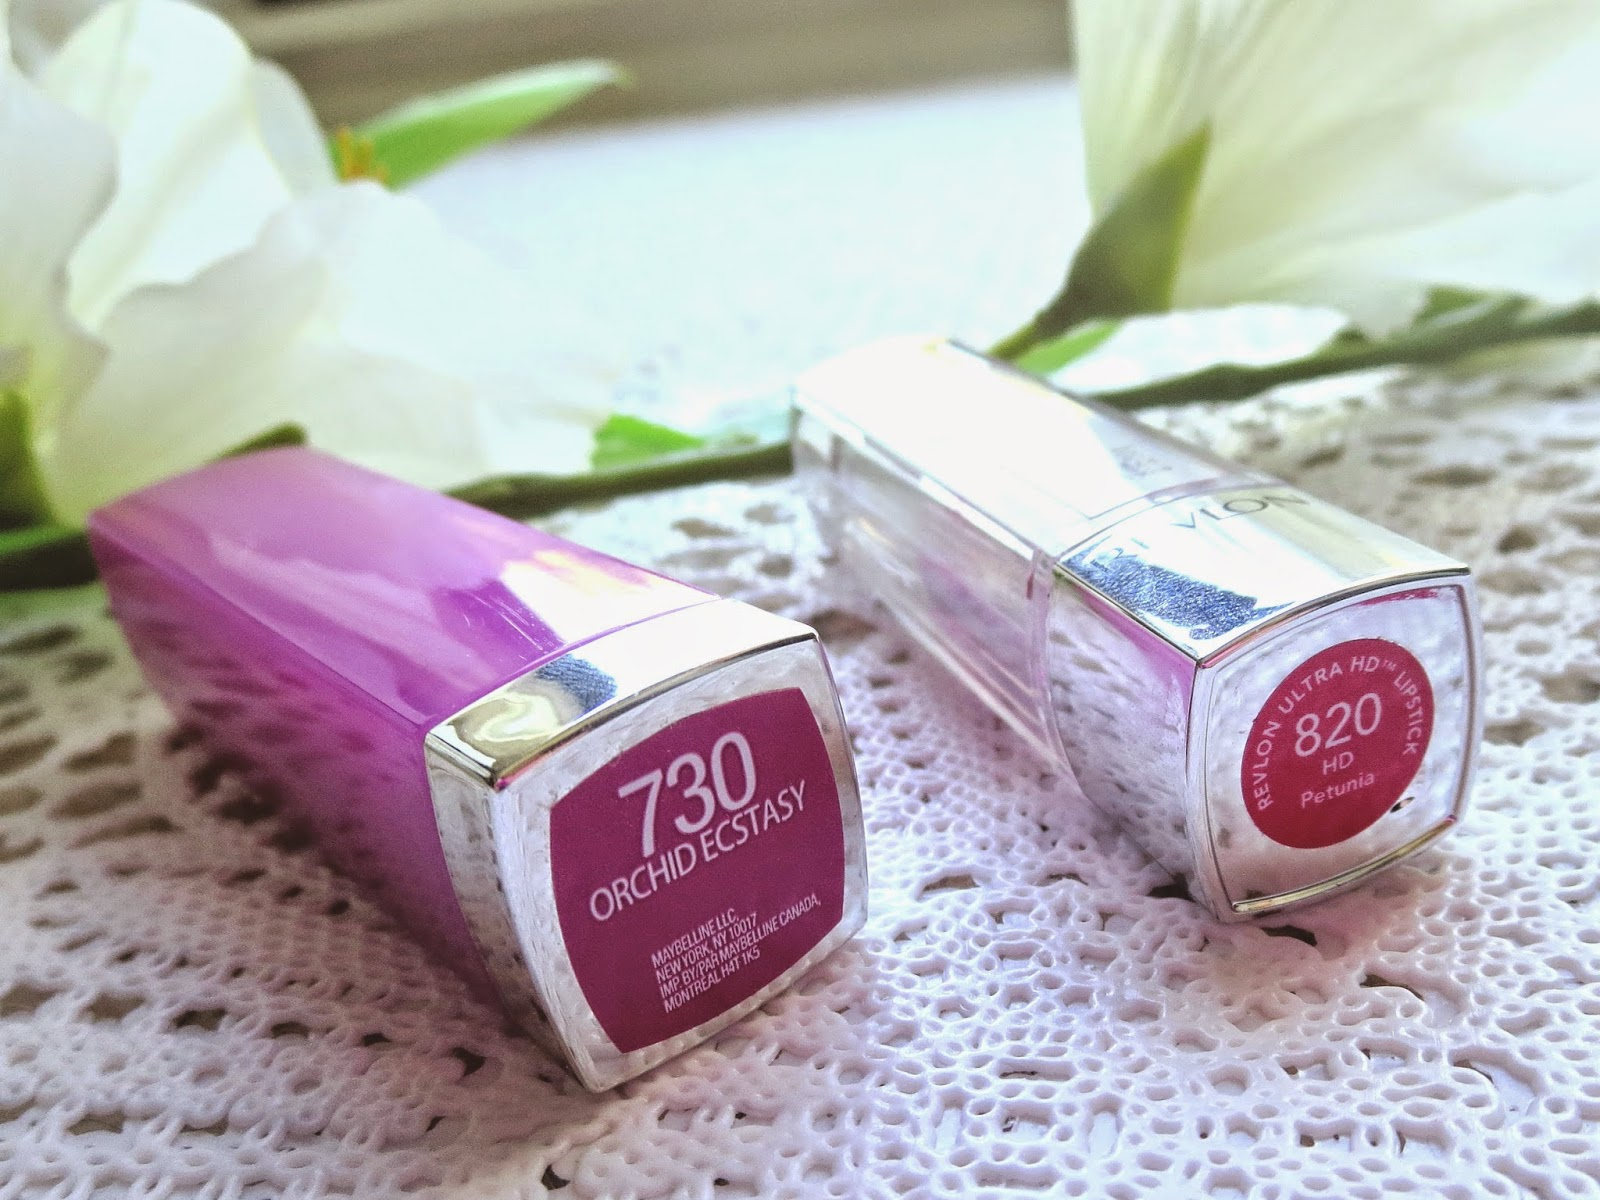 a picture of spring favorites for lips ; maybelline orchid ecstasy, revlon hd petunia